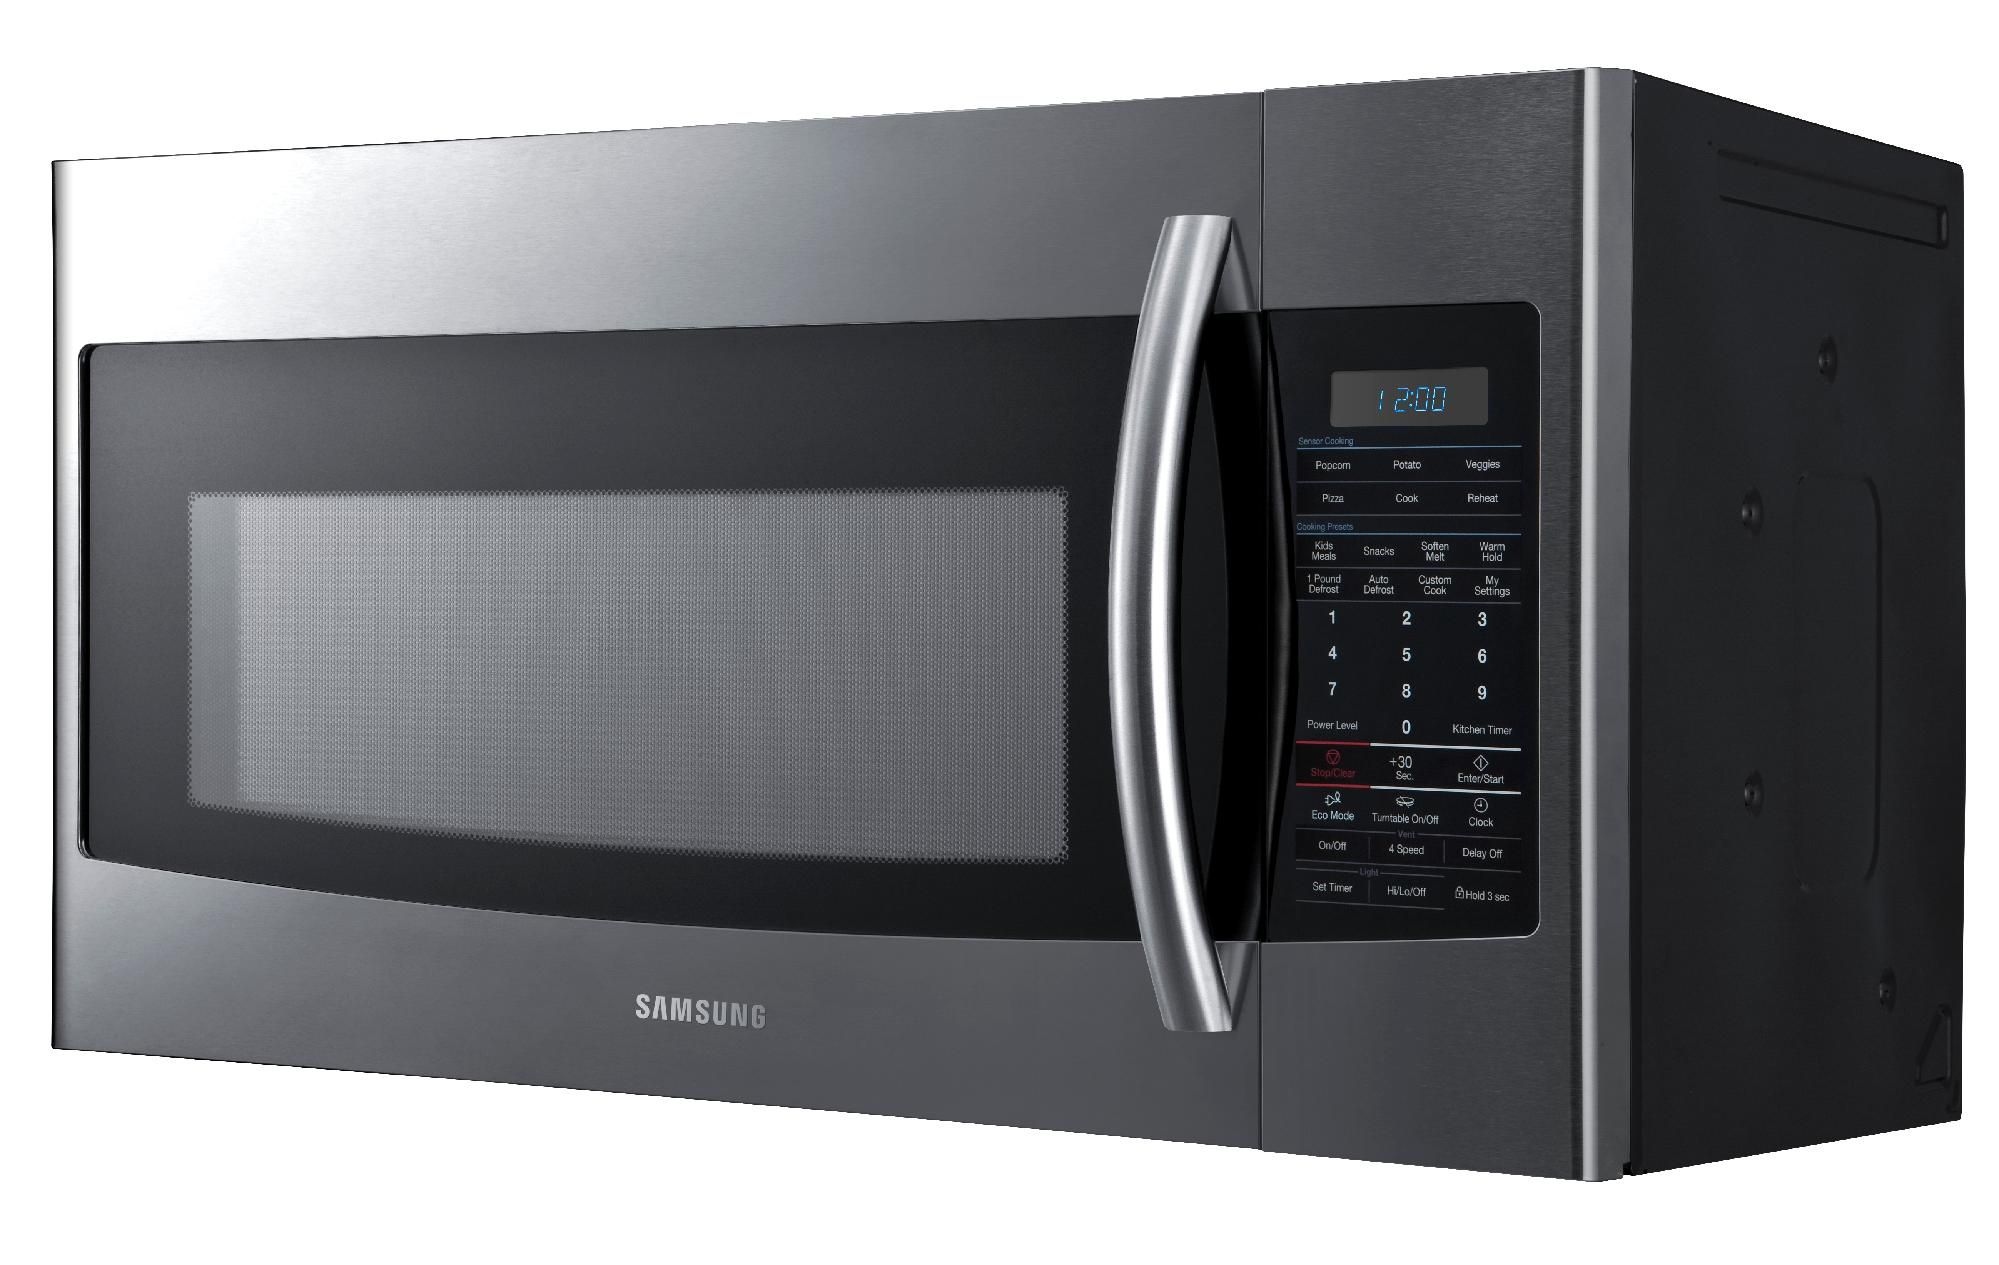 "Samsung 30"" Over the Range Microwave - Stainless Steel"